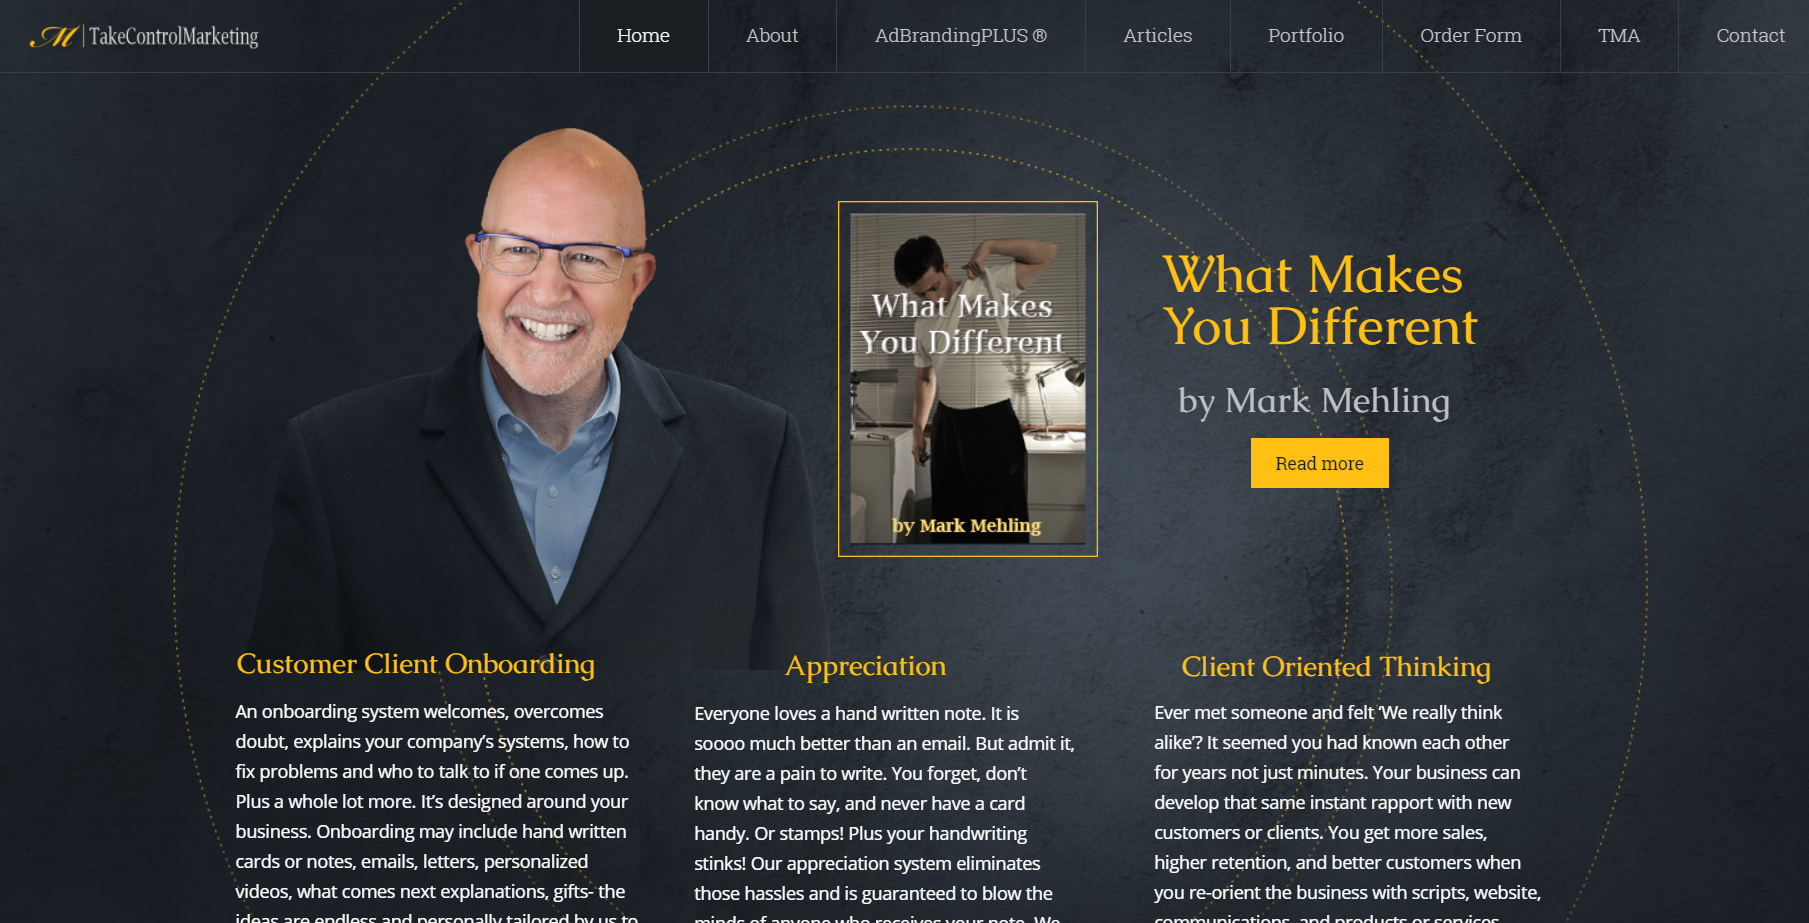 Web Design for Marketers